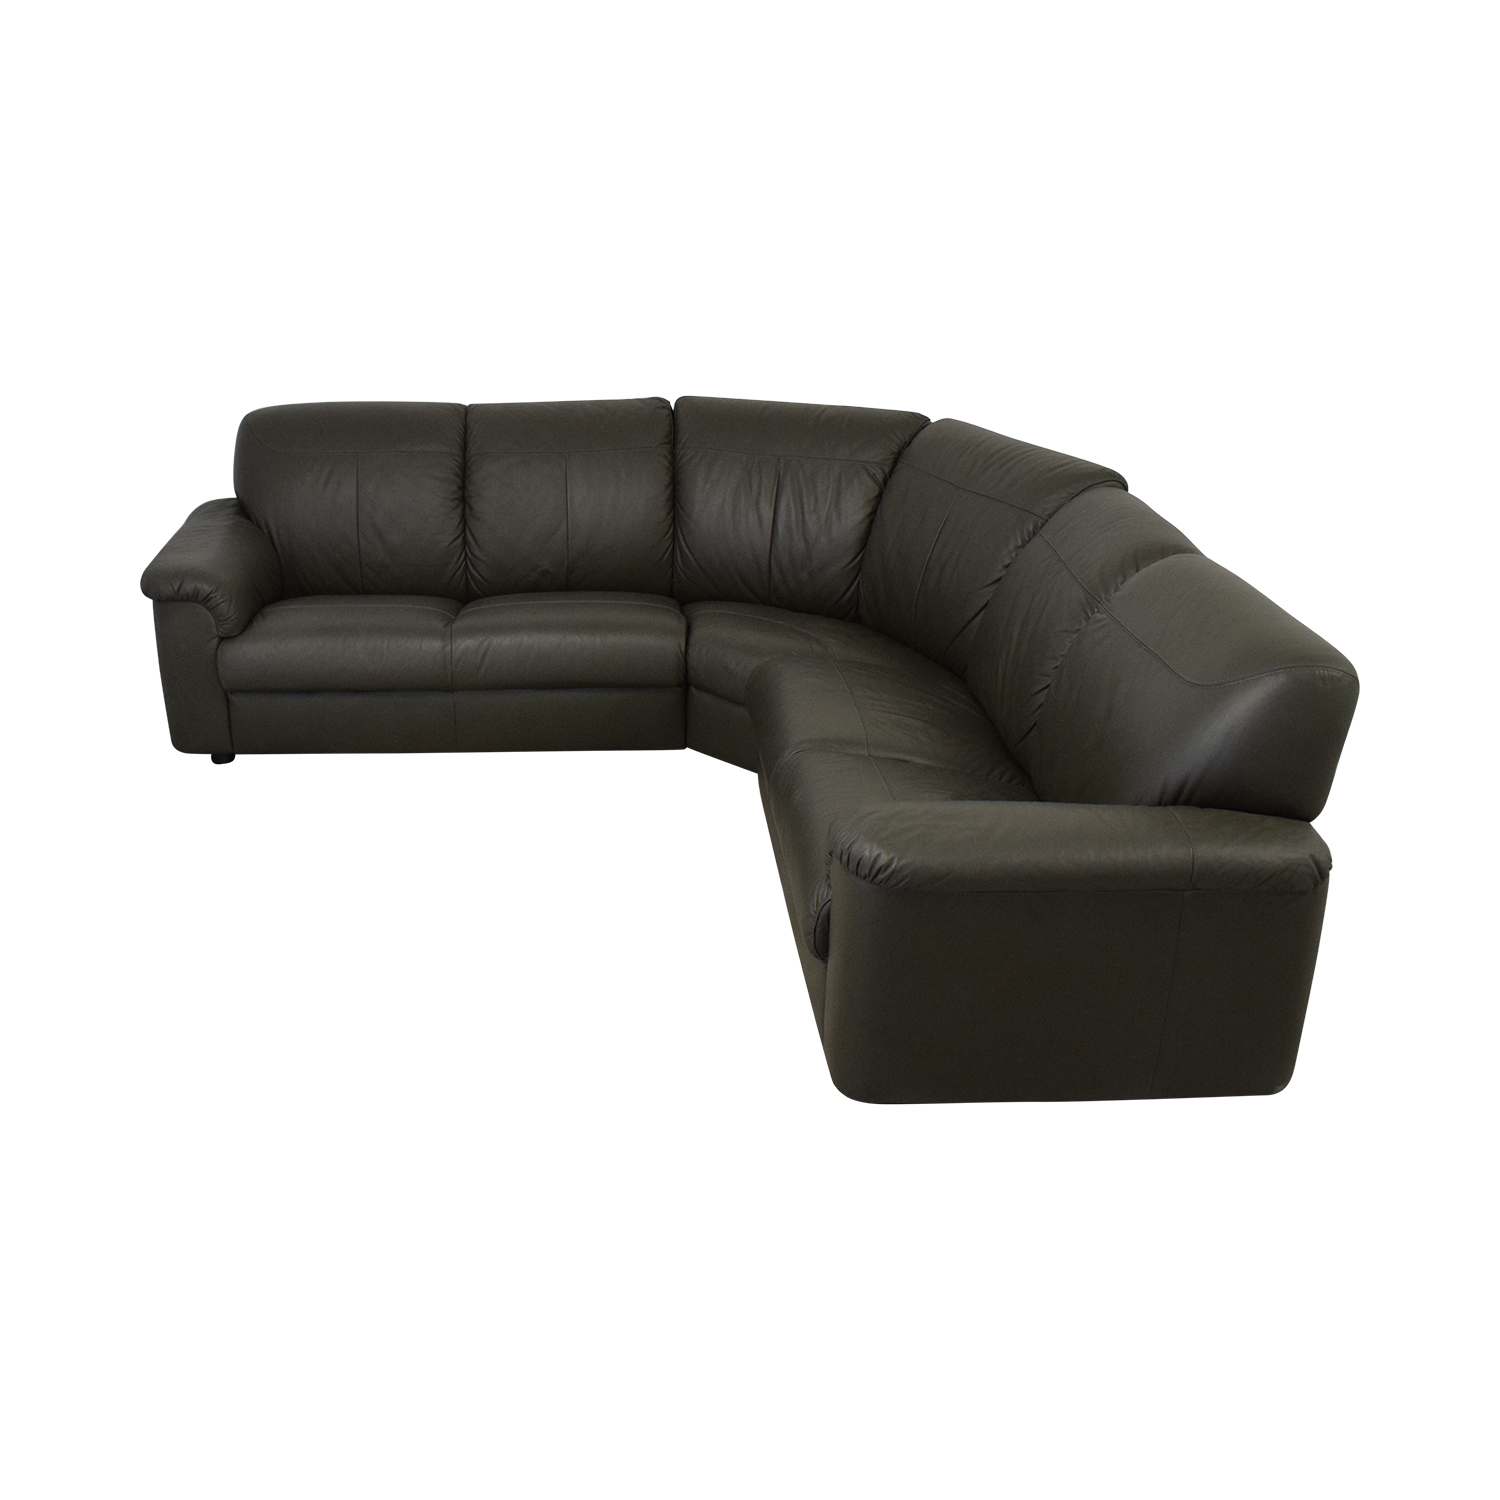 IKEA IKEA Timsfors Leather Sectional nyc